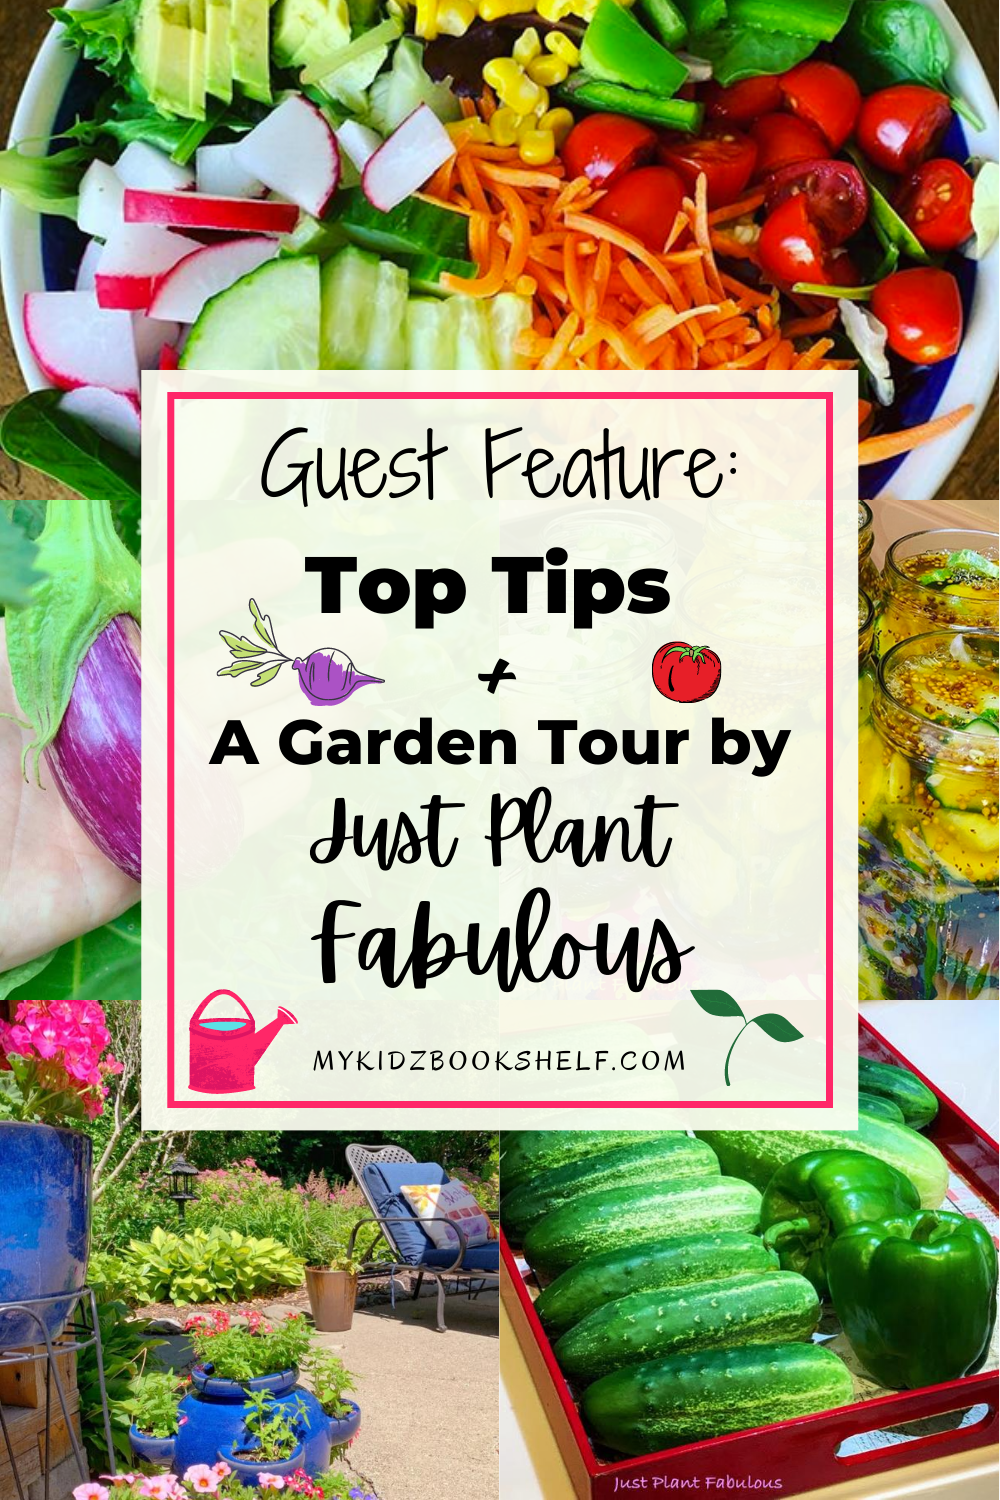 Guest Feature Pin Just Plant Fabulous with garden veggie pics and flower